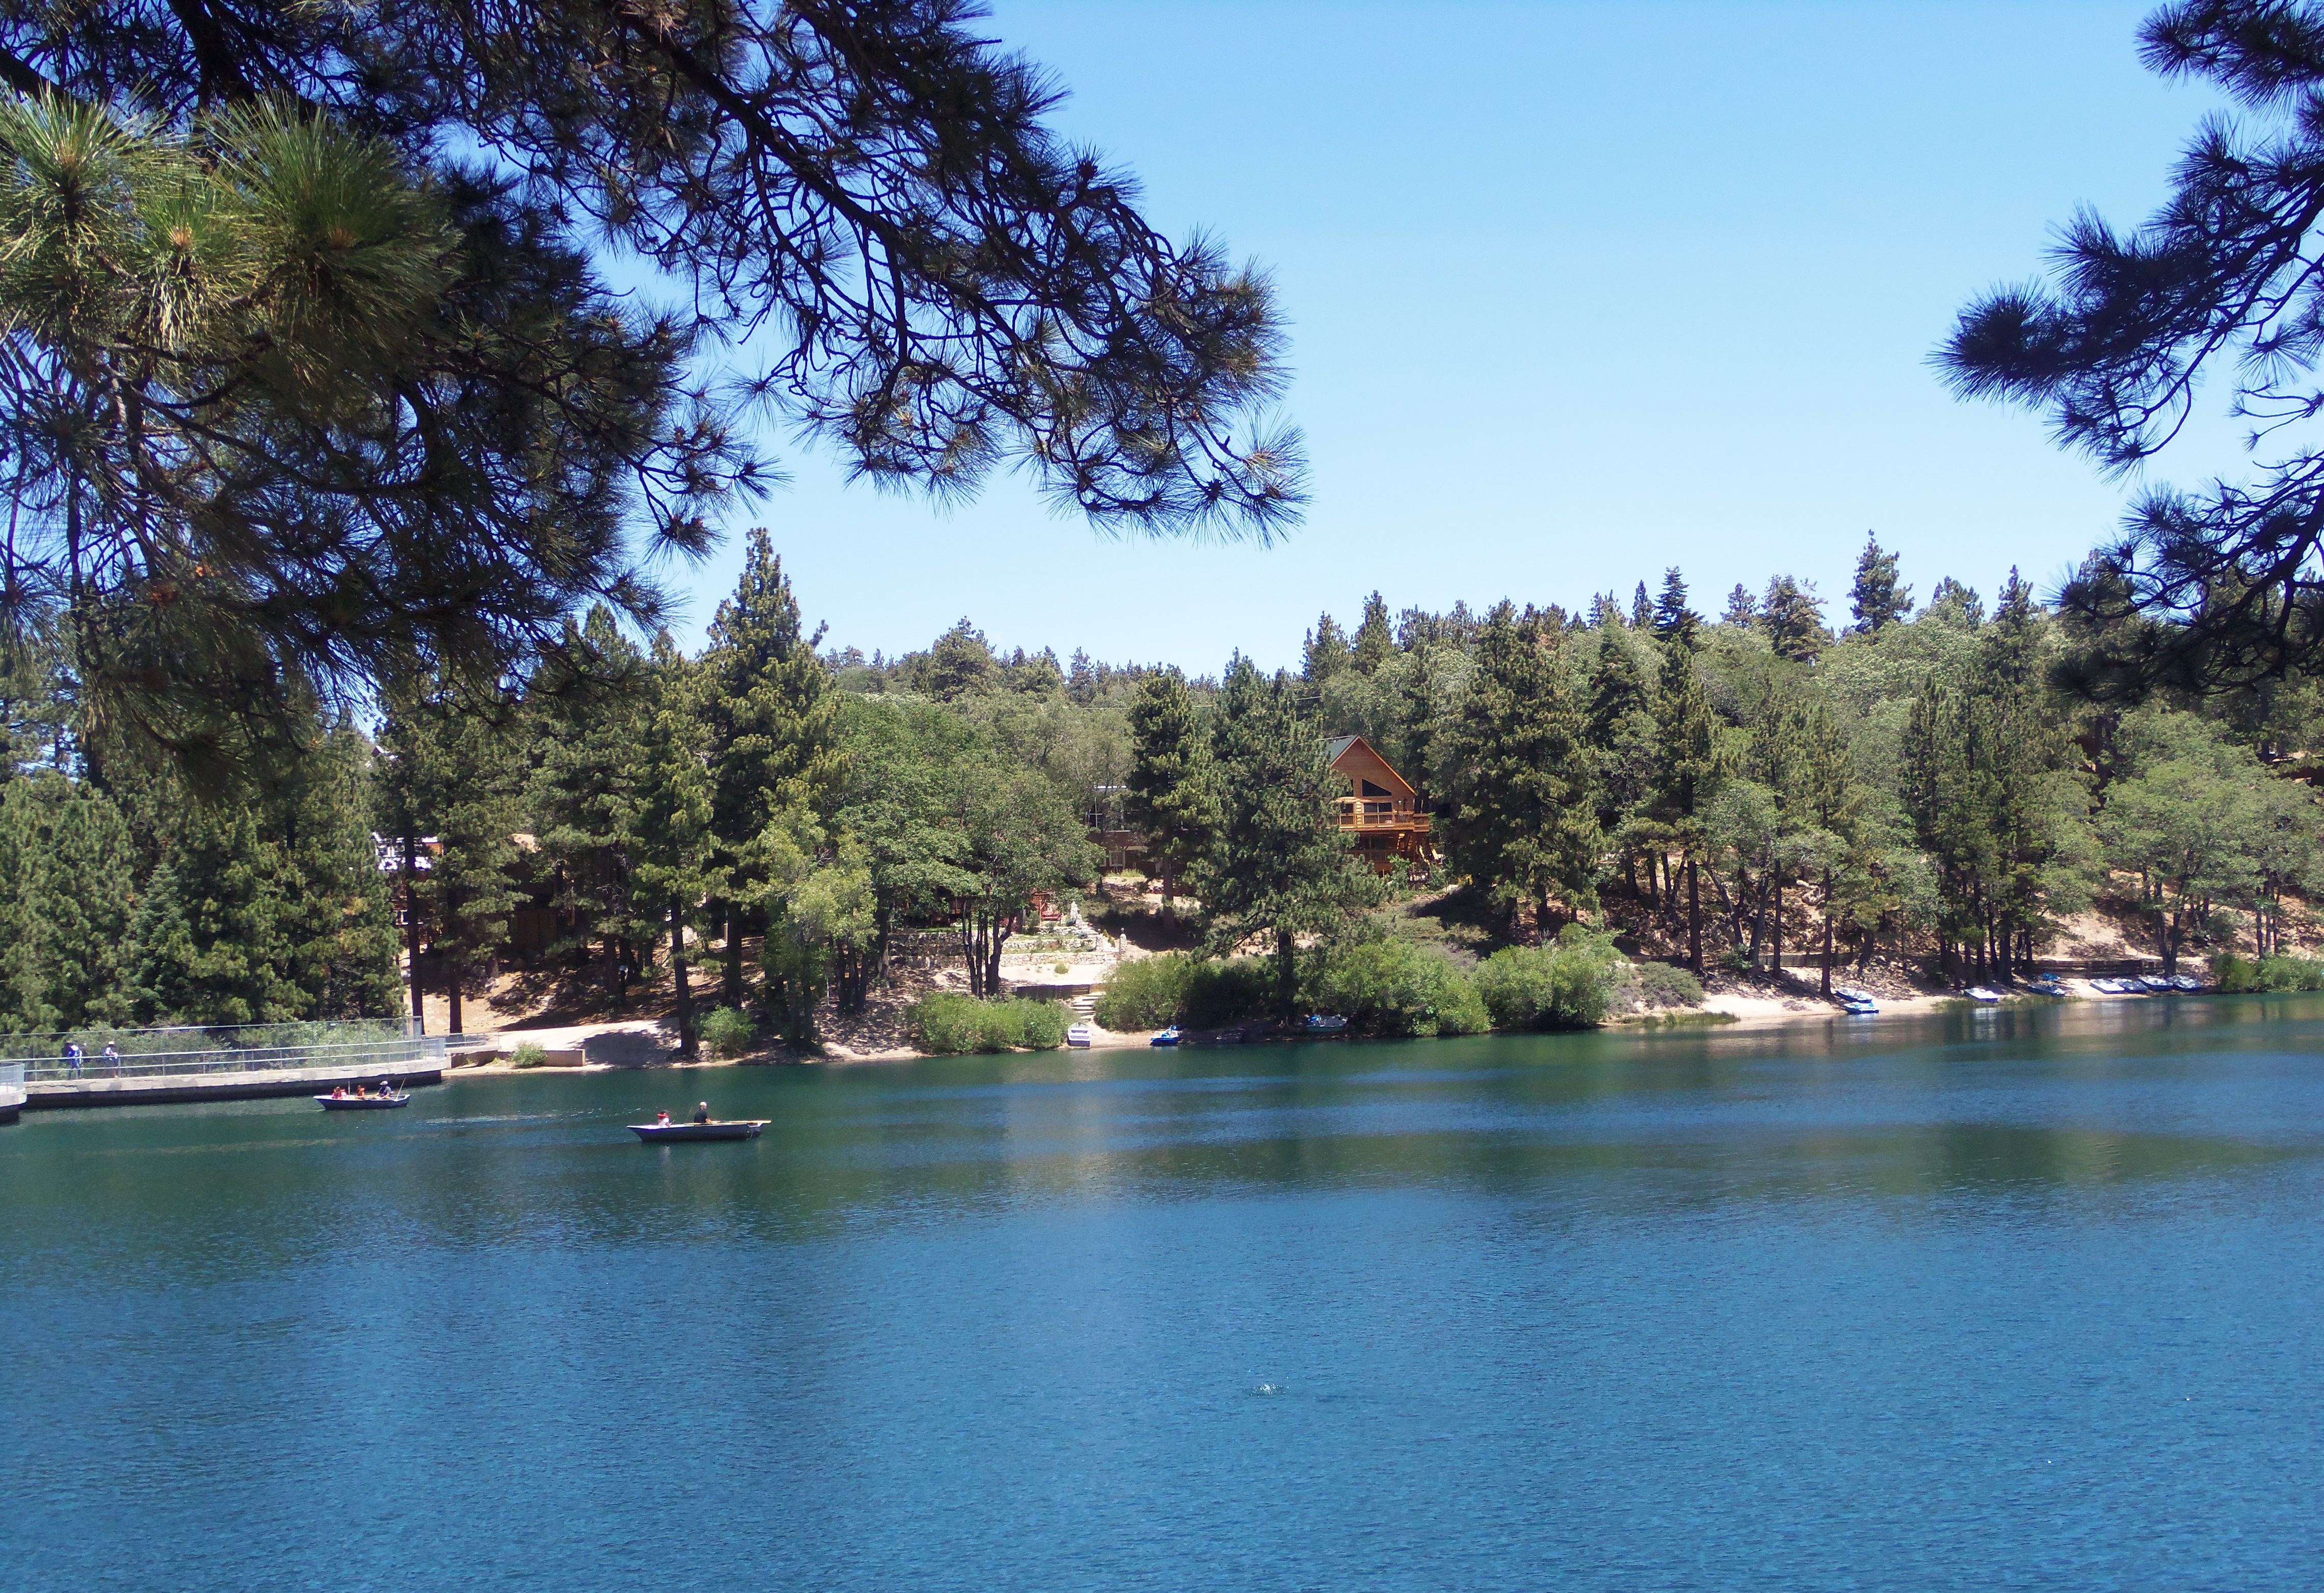 Green valley lake news joan moseley 39 s mountain top echoes for Green valley lake fishing